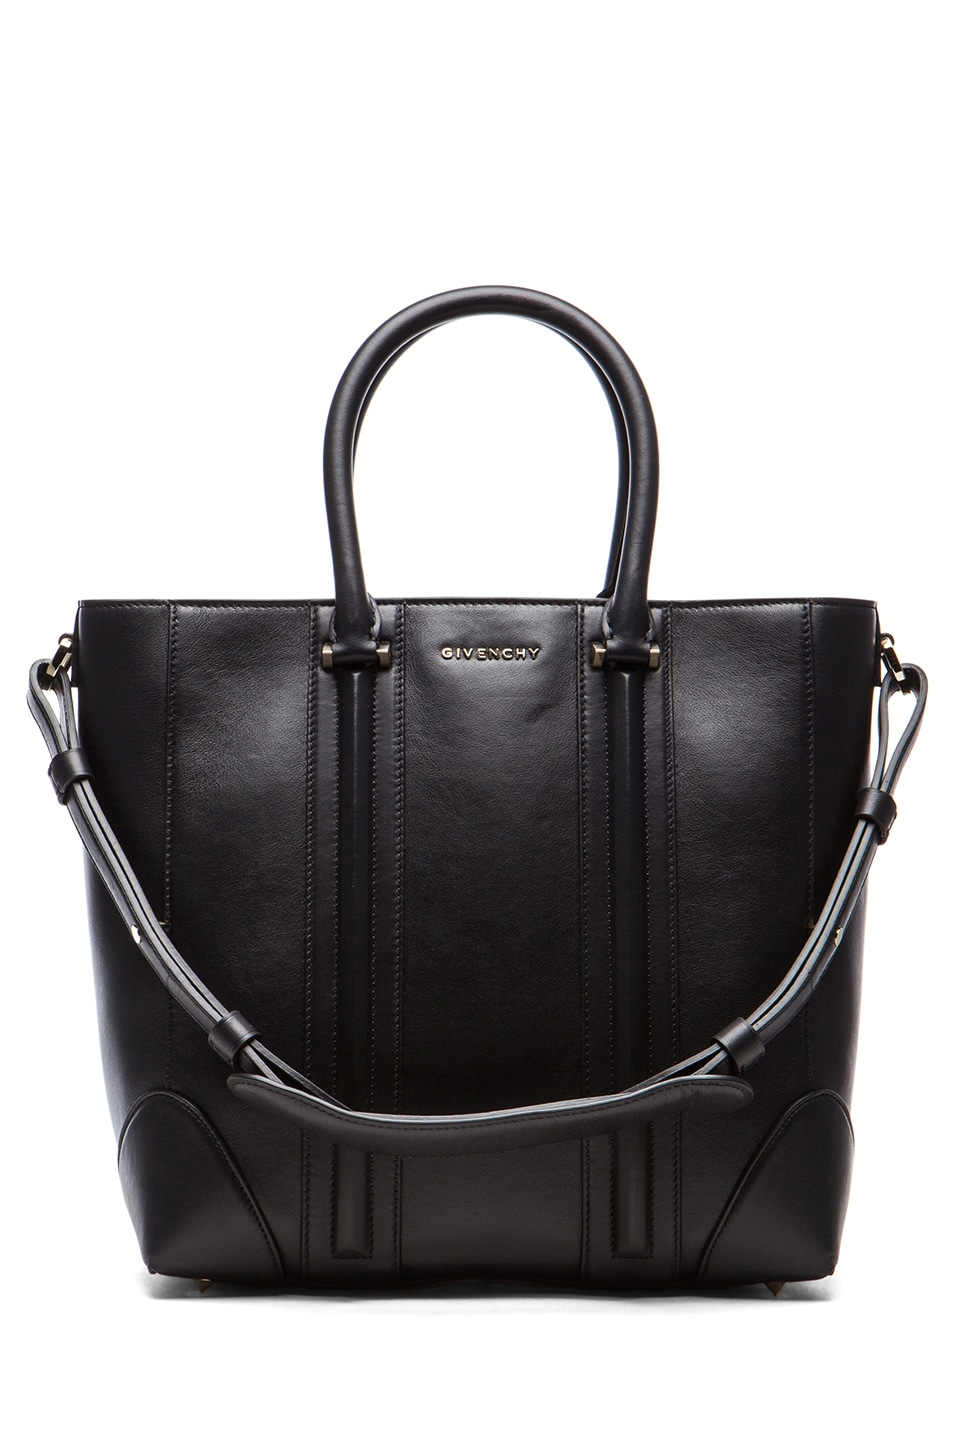 Image 1 of GIVENCHY Medium Lucrezia Tote in Black